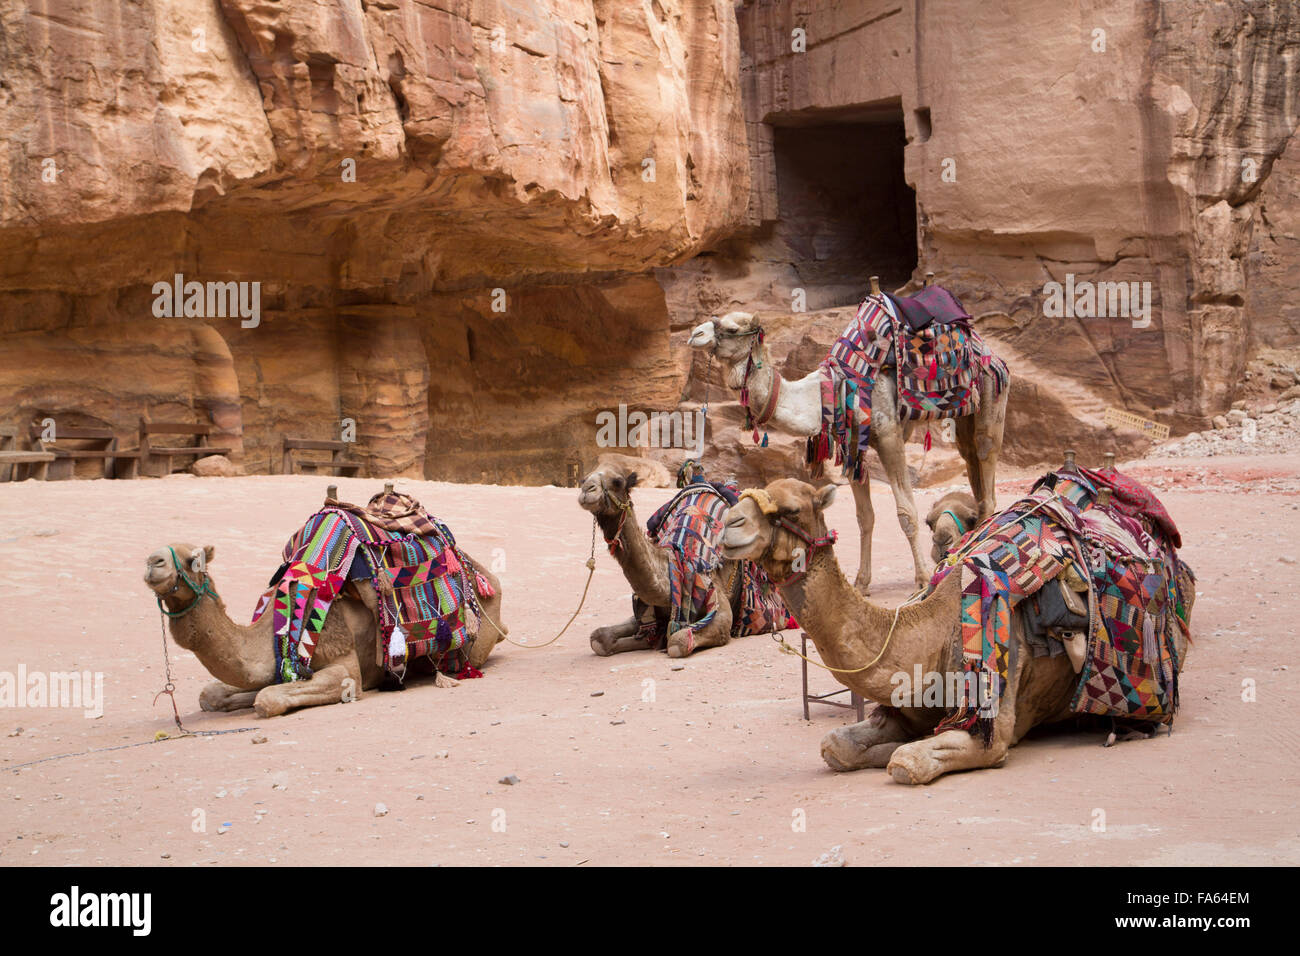 Camels in the Treasury Area, Petra, UNESCO World Heritage Site, Jordan - Stock Image